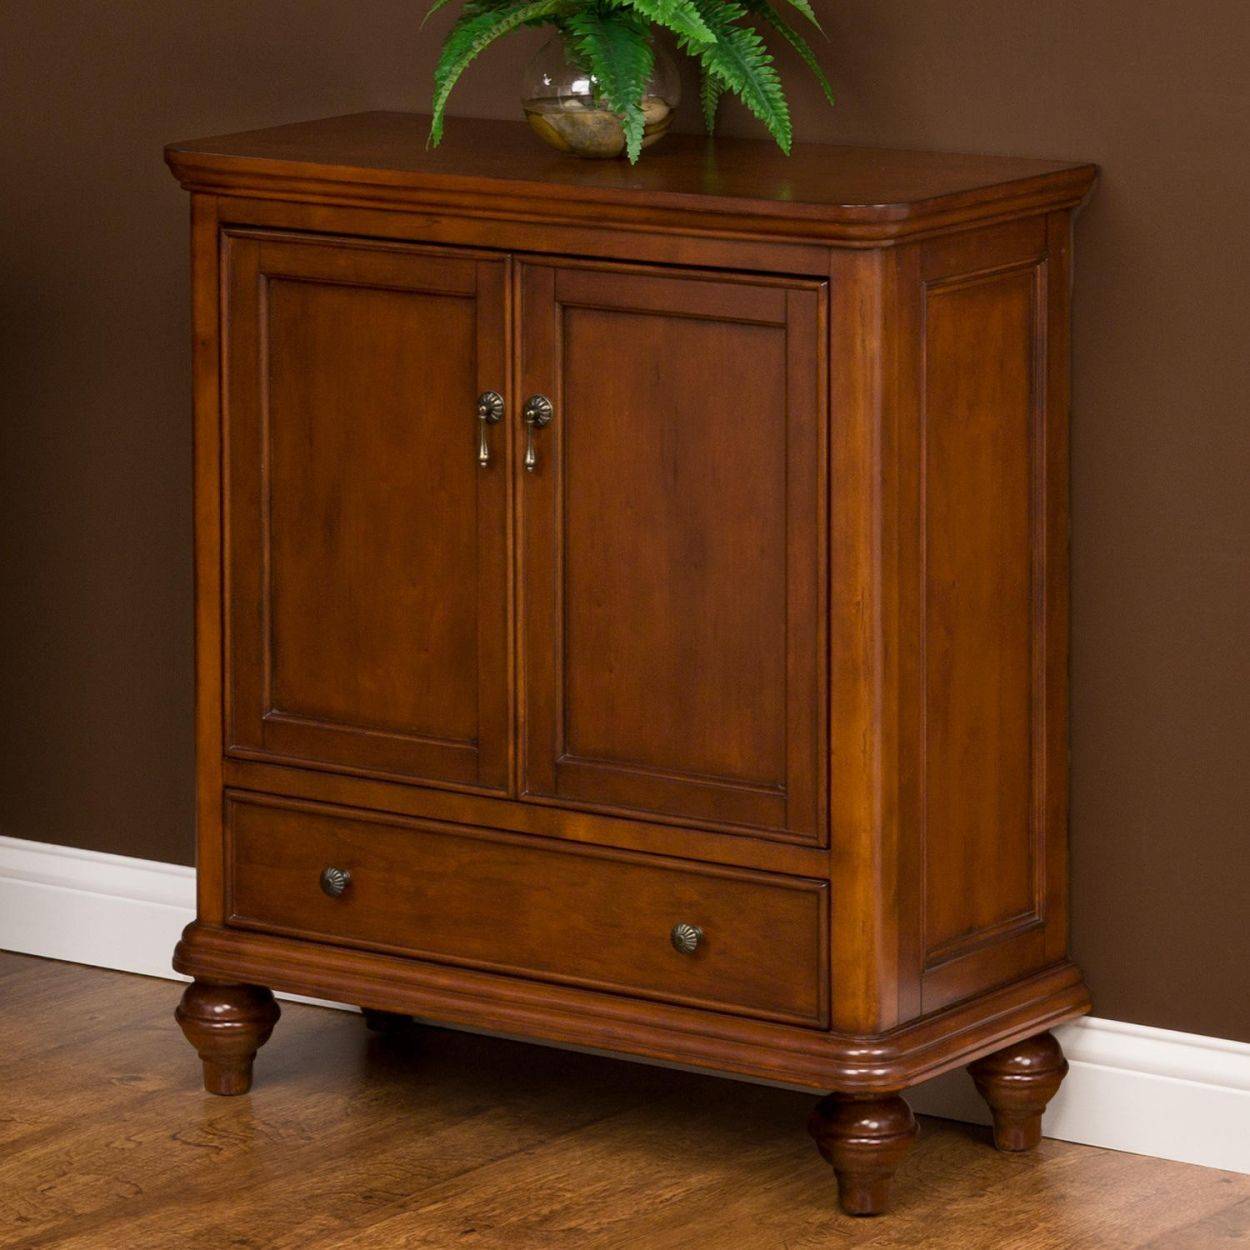 Merveilleux Hamper Furniture Wood   Cool Rustic Furniture Check More At  Http://searchfororangecountyhomes.